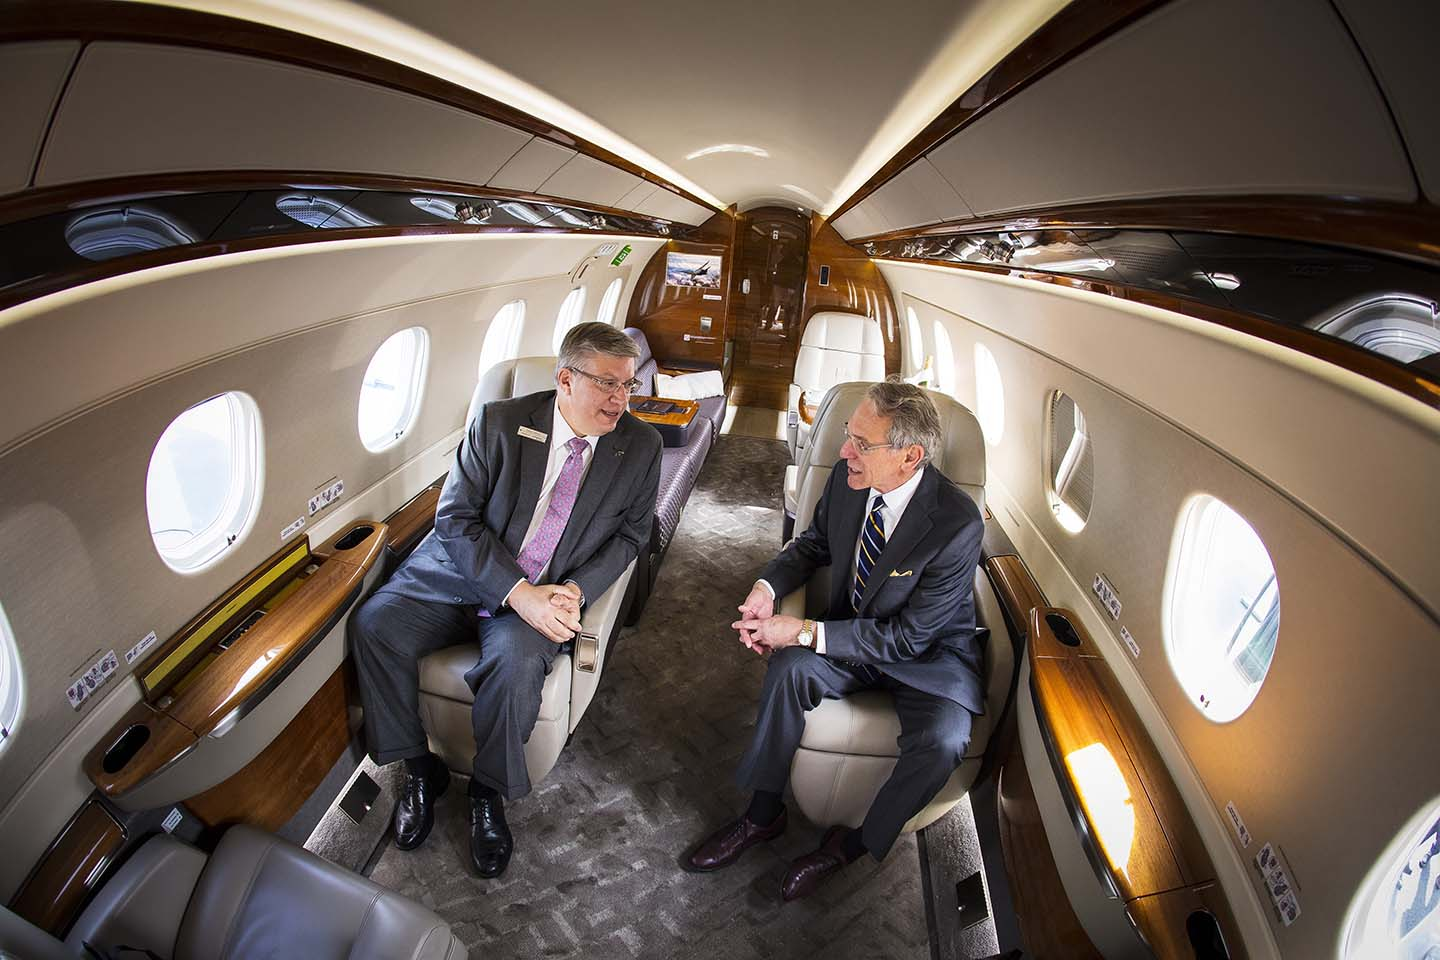 Two business travlers chat inside the plane.